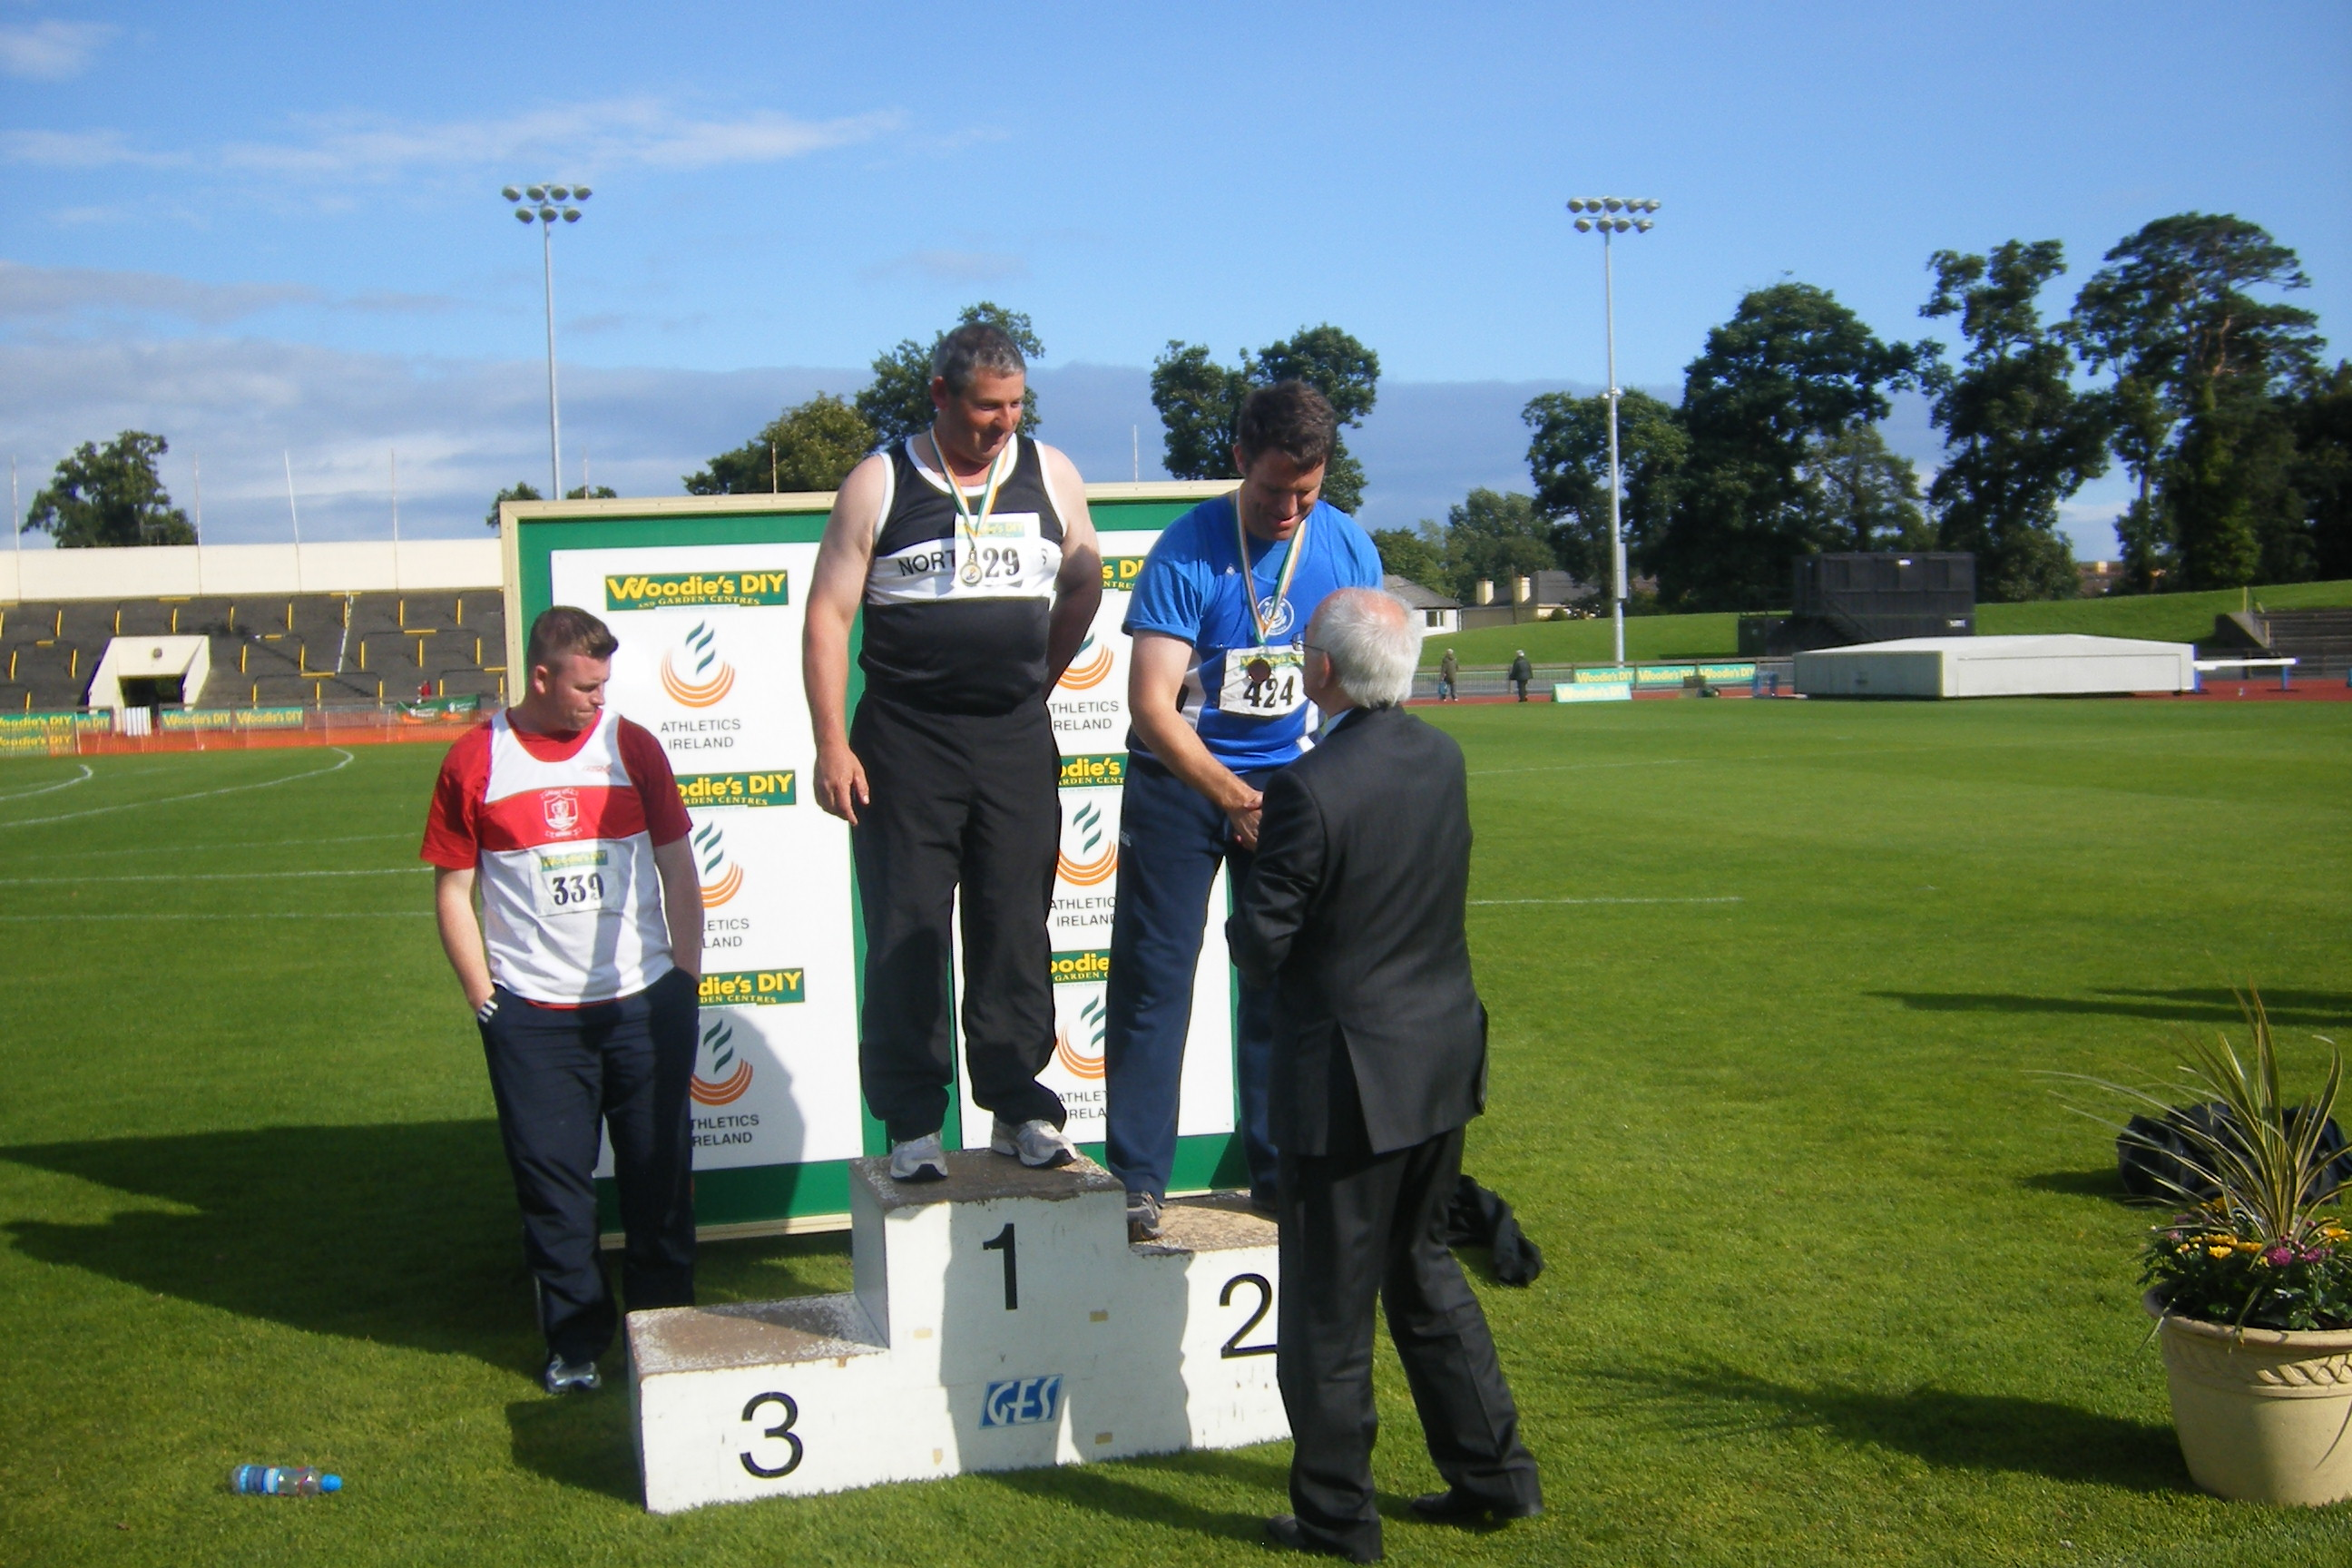 barry-delany-presented-with-silver-medal-in-wt4ht-by-president-of-aai-liam-hennessey-01-08-09